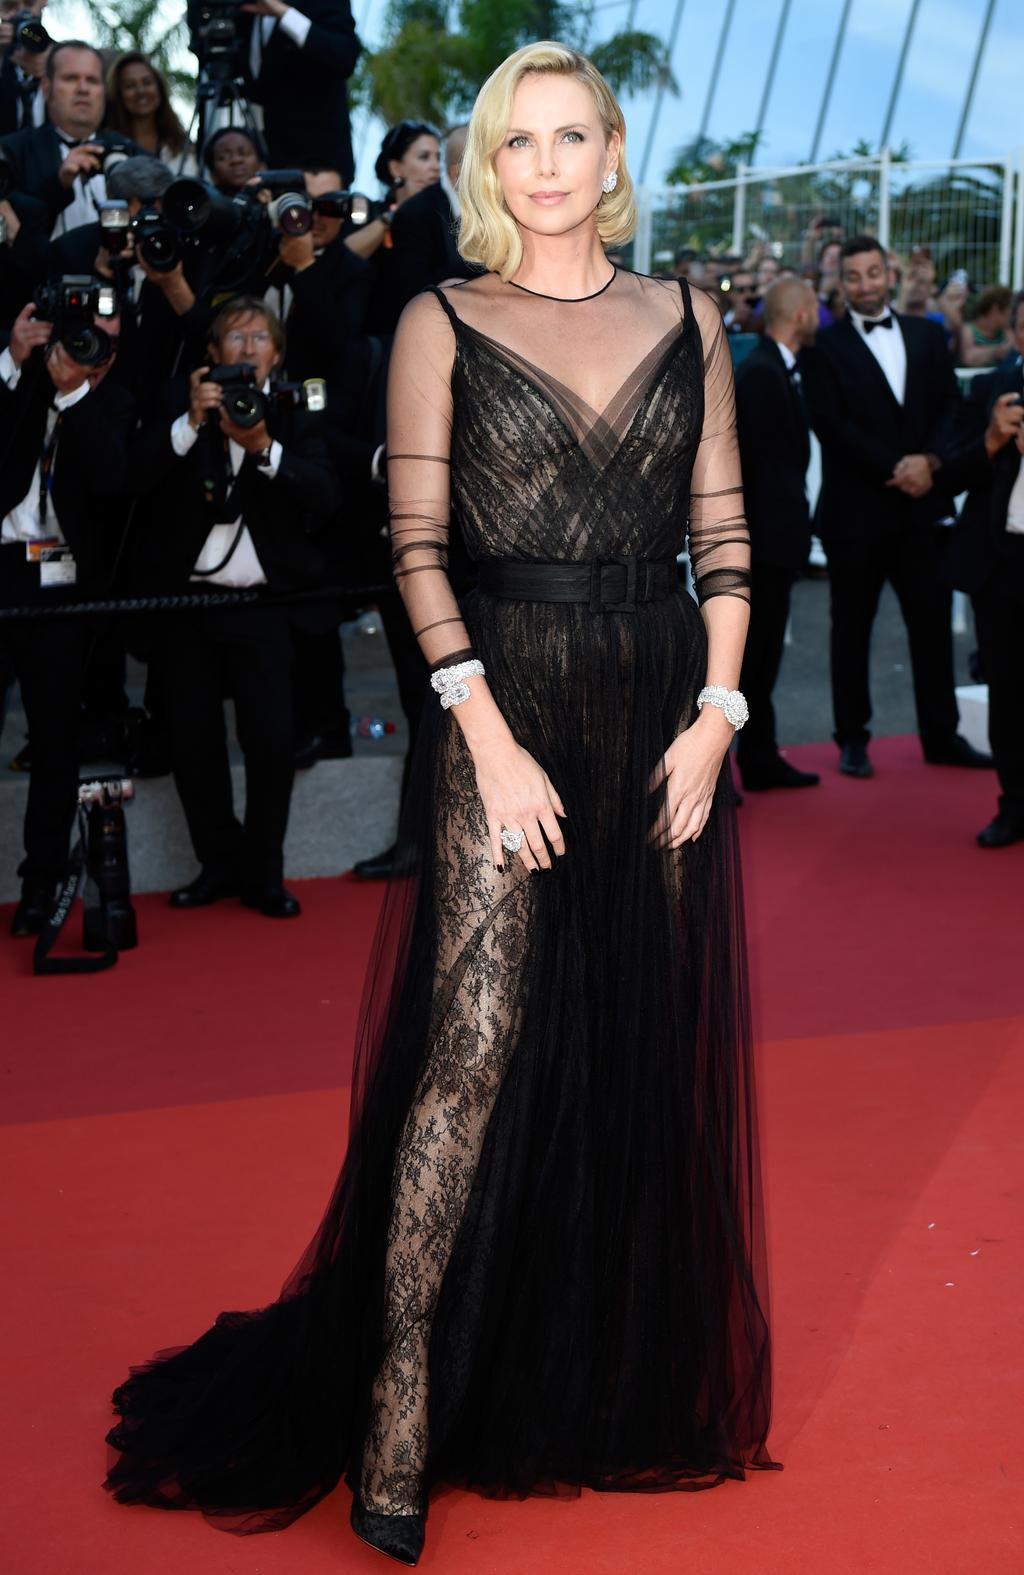 65c632f1e2a Charlize Theron attends the 70th Anniversary of the 70th annual Cannes Film  Festival at Palais des